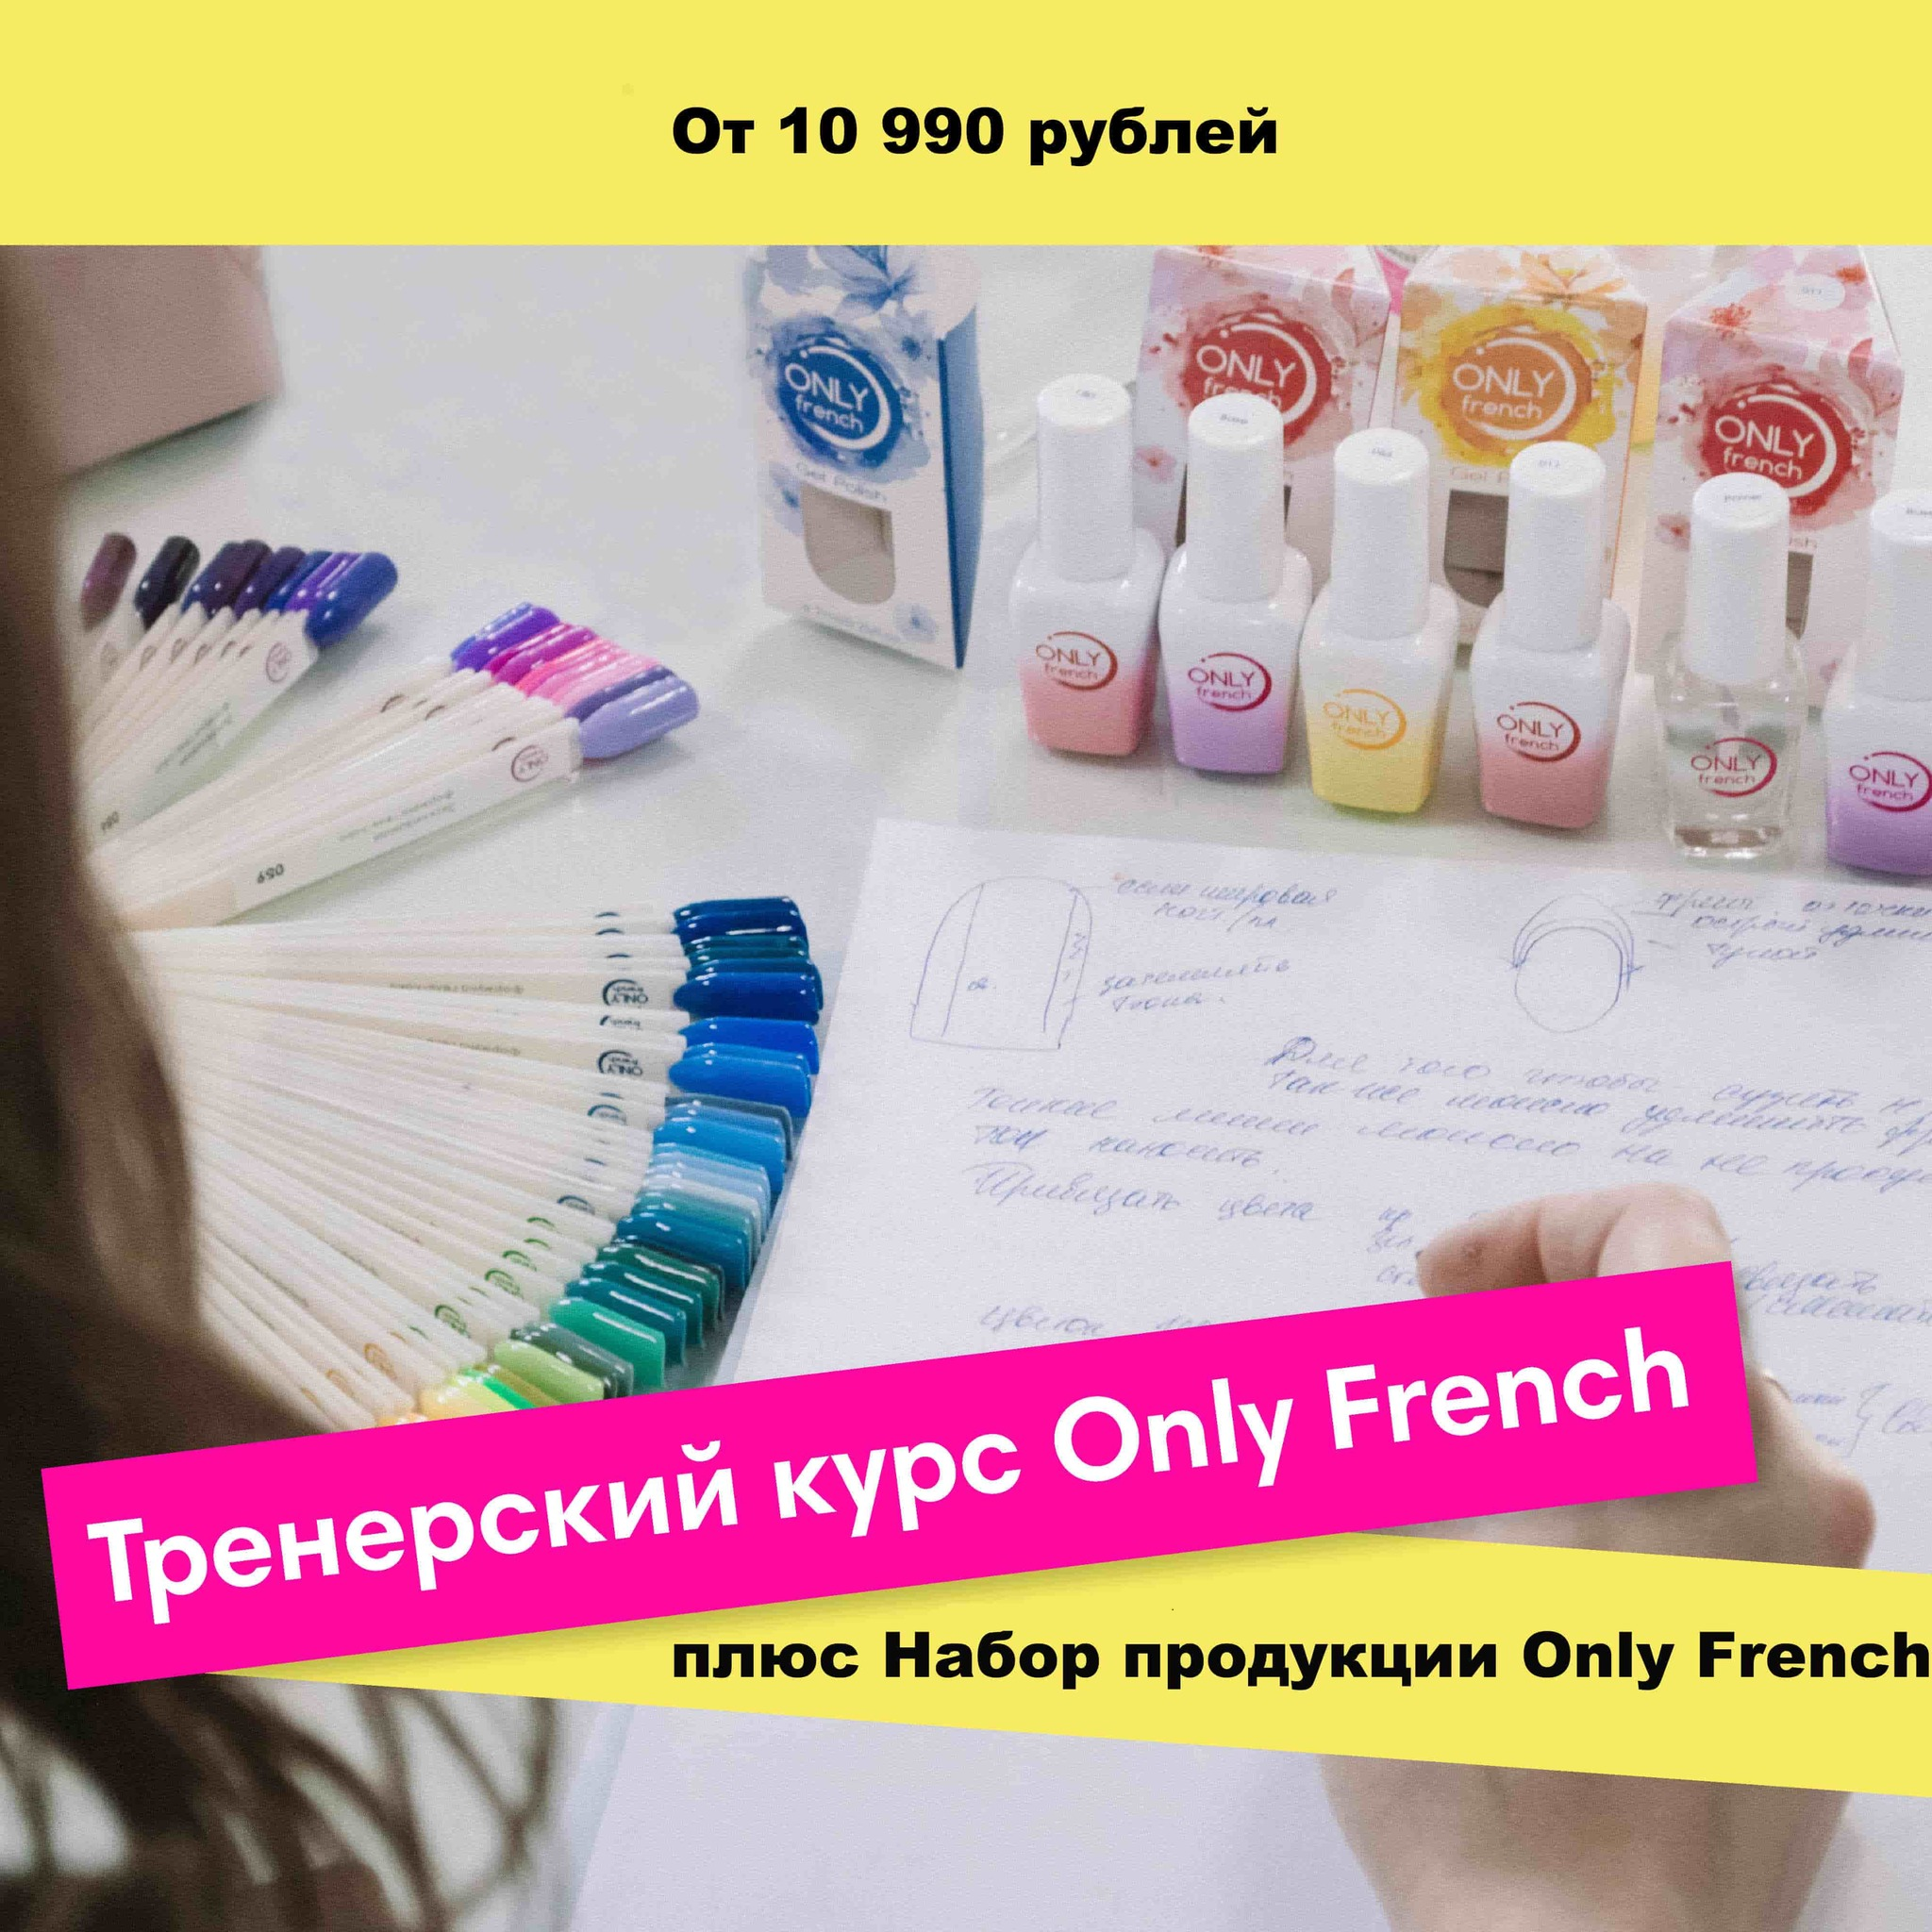 Как стать инструктором Only French? Online курс